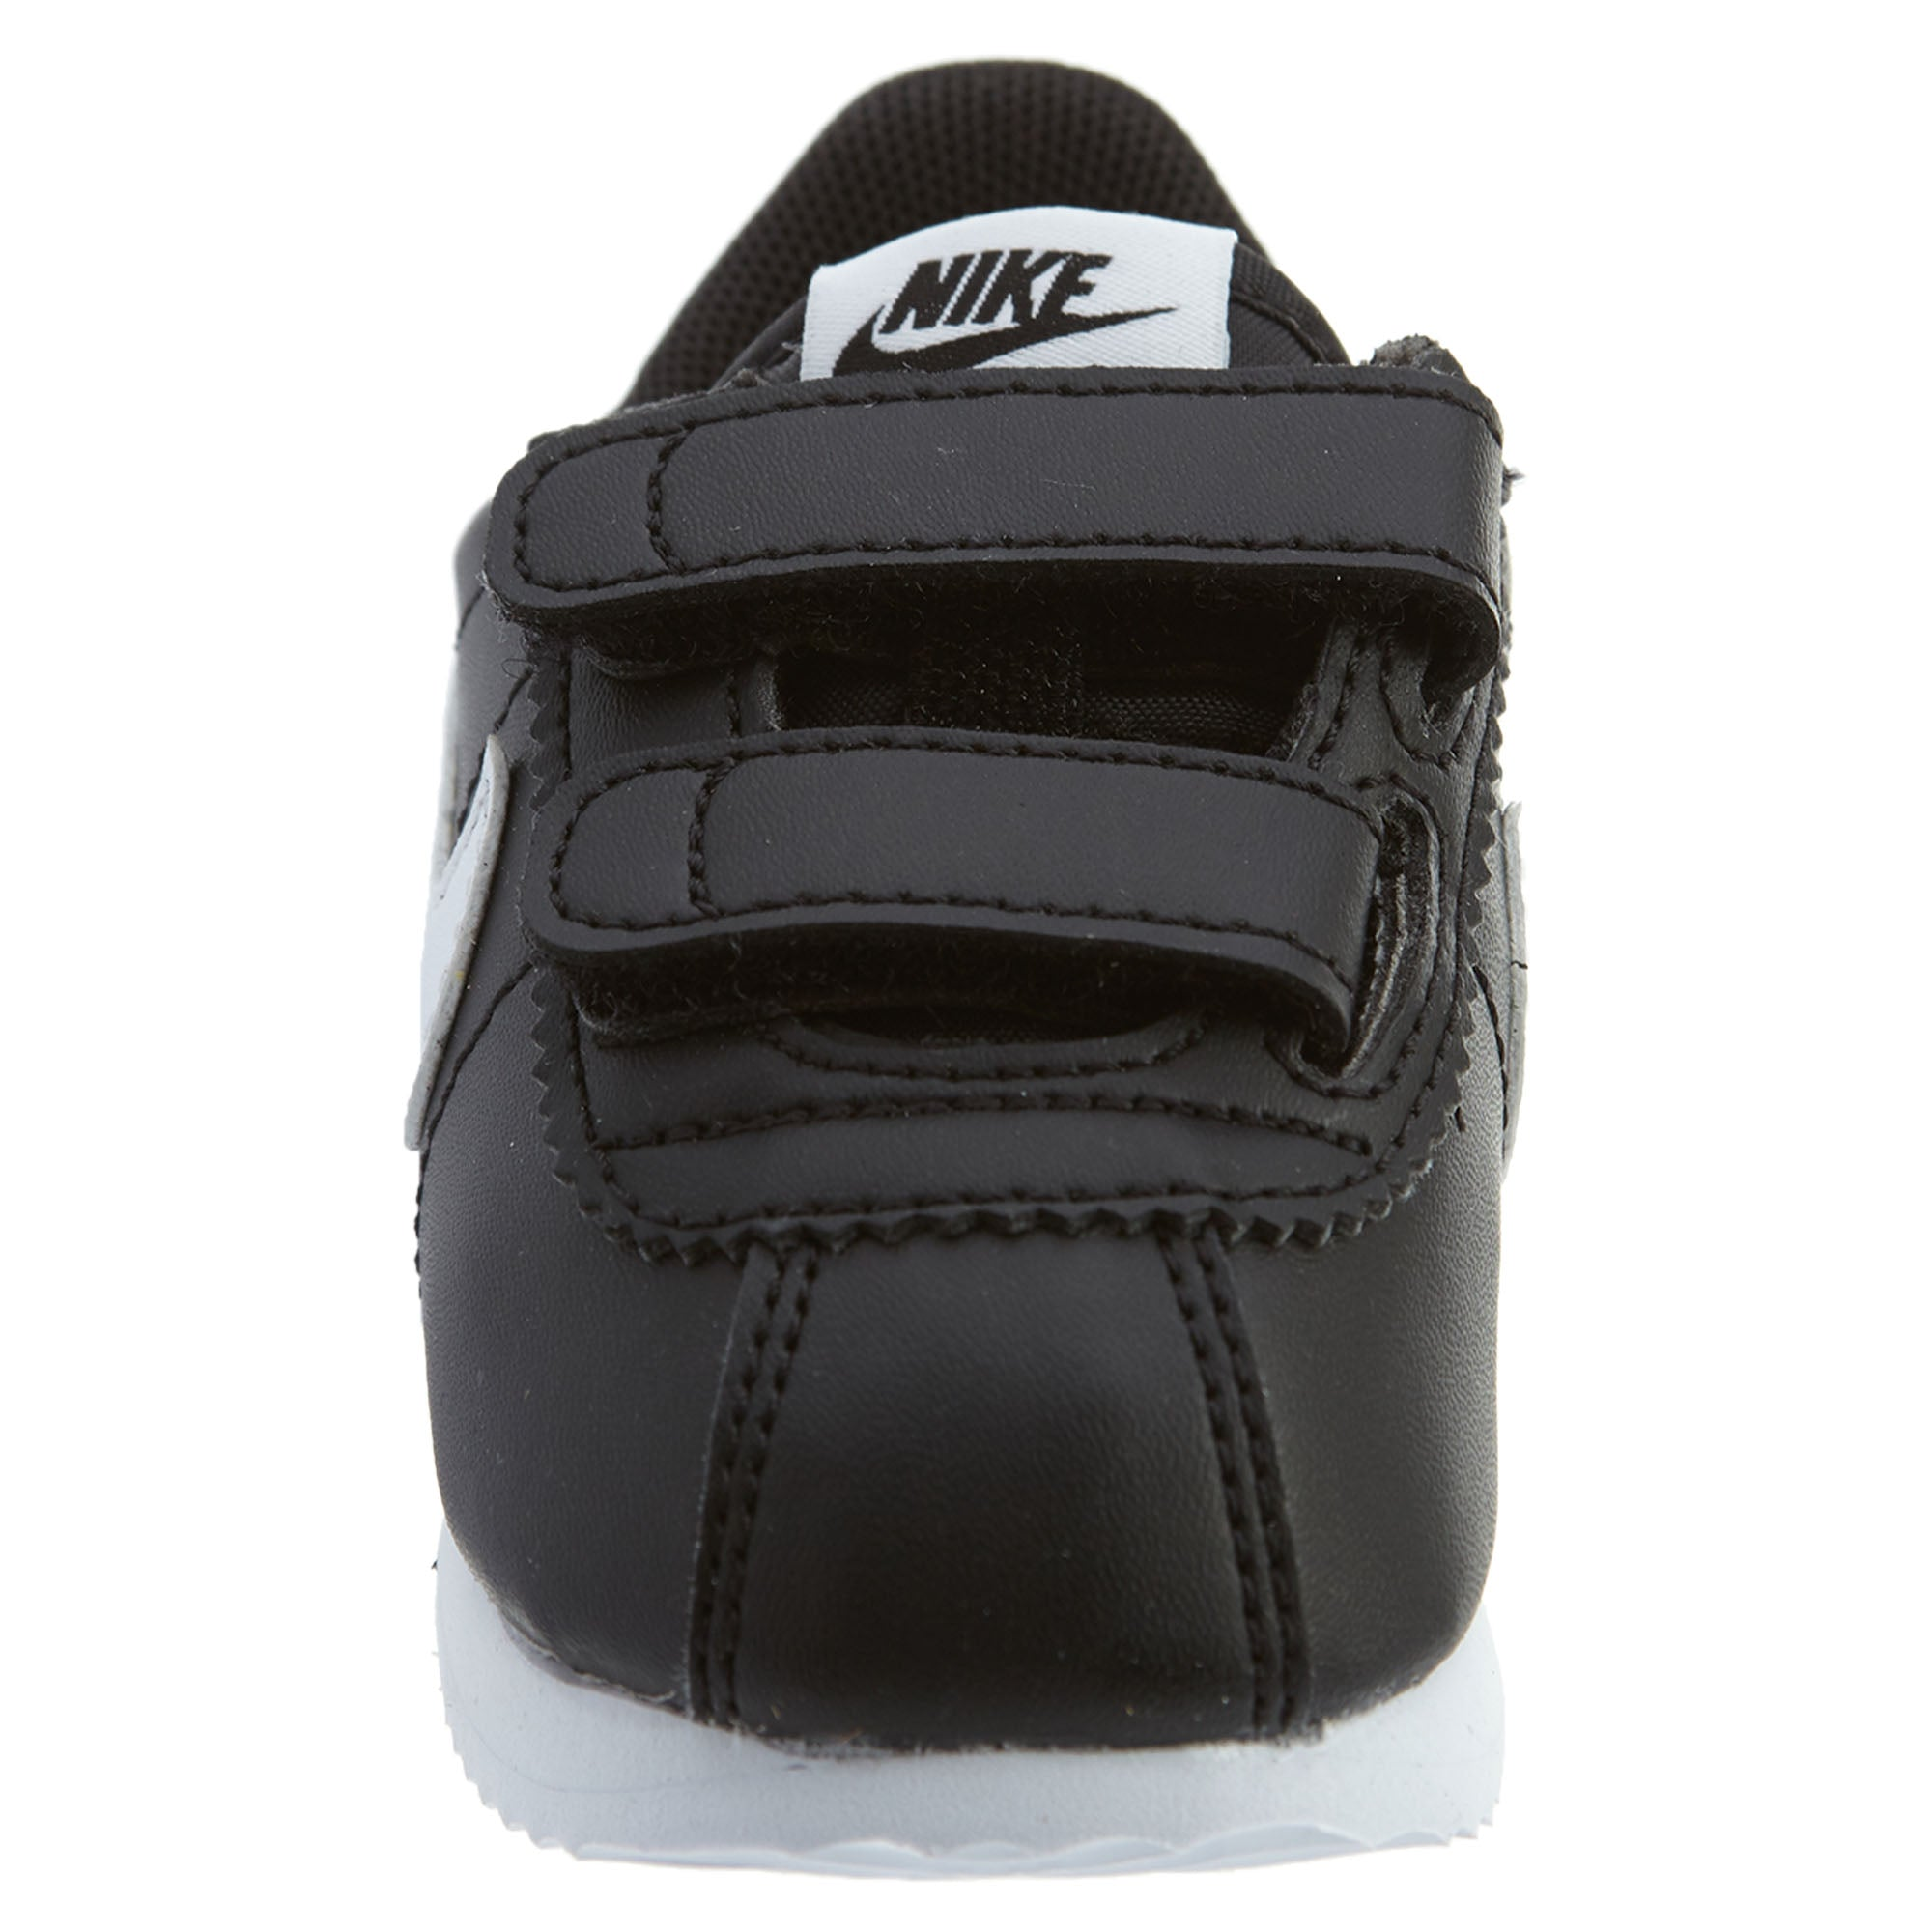 33c560fcbf Nike Cortez Basic Sl Toddlers Style : 904769-001 – talkmoney730